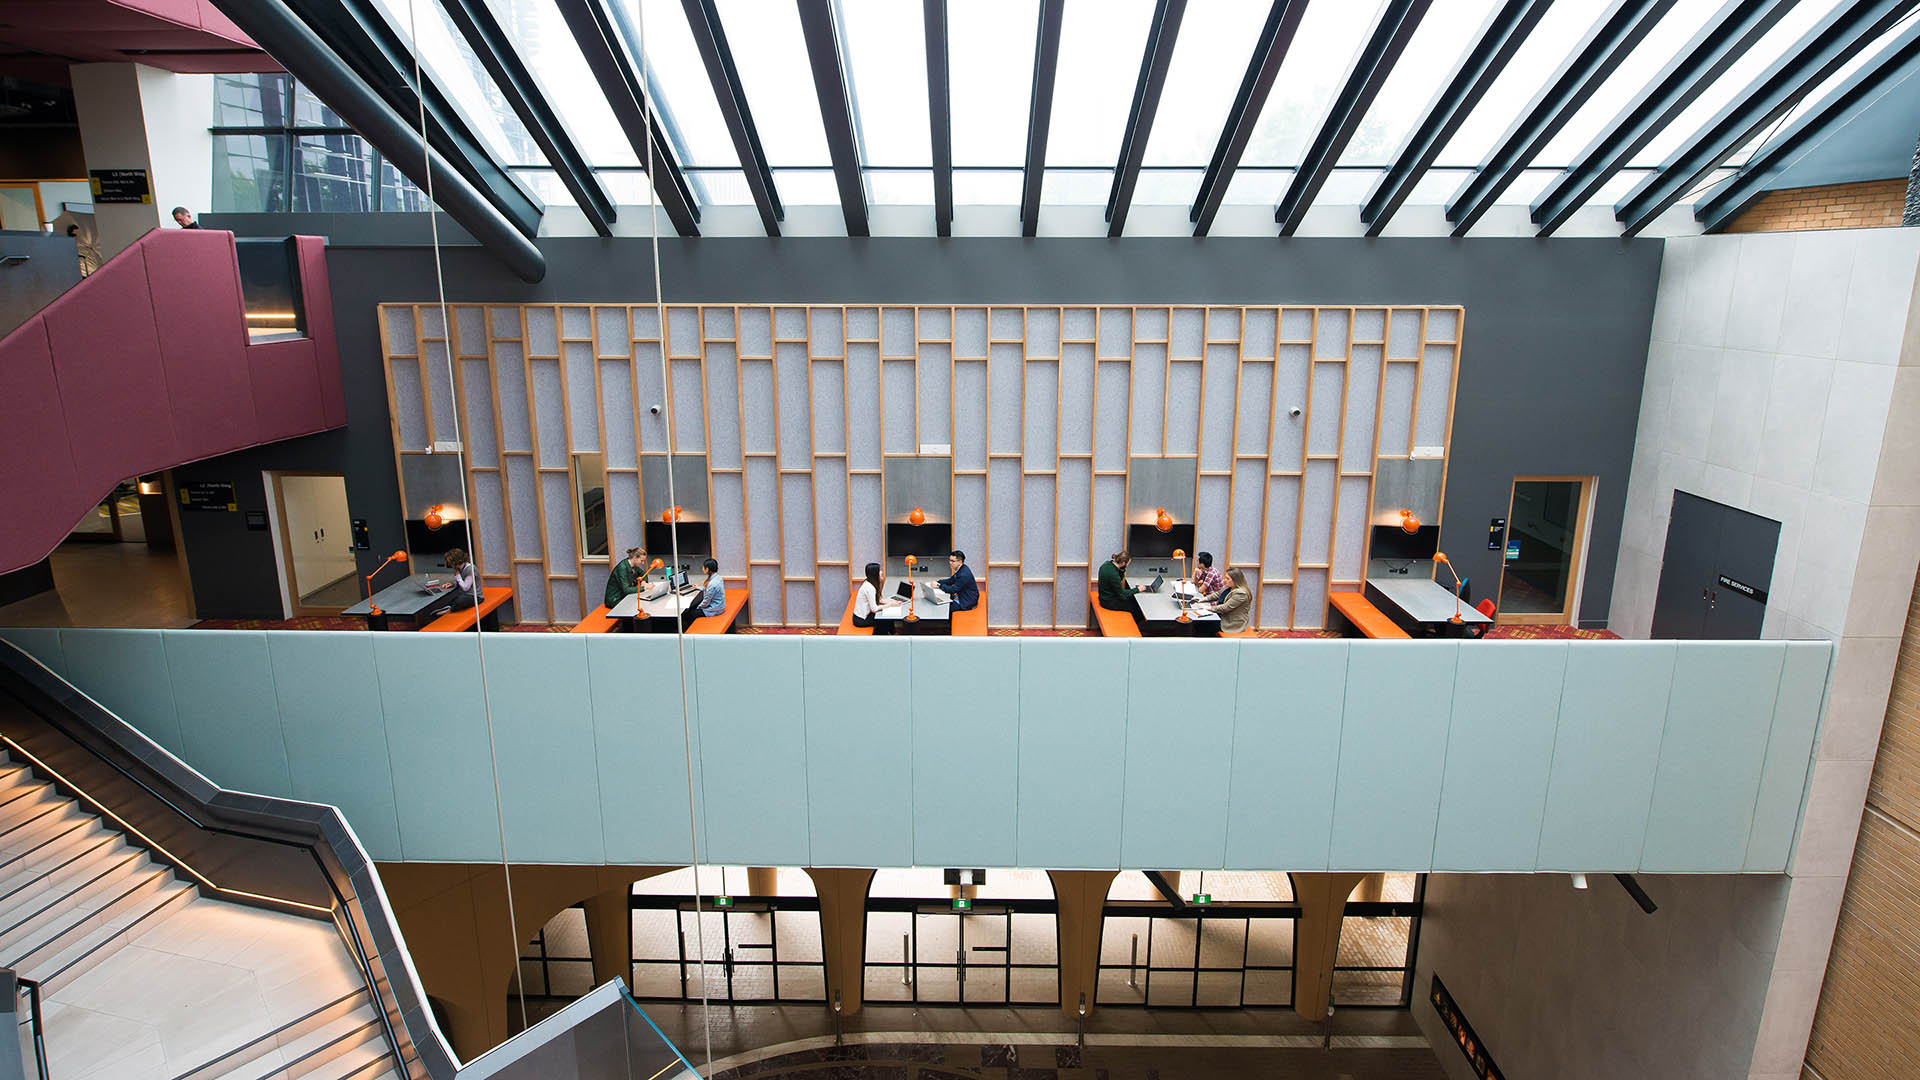 * interior of a building it has light filled beamed roof and a mezzanine with desks and chairs